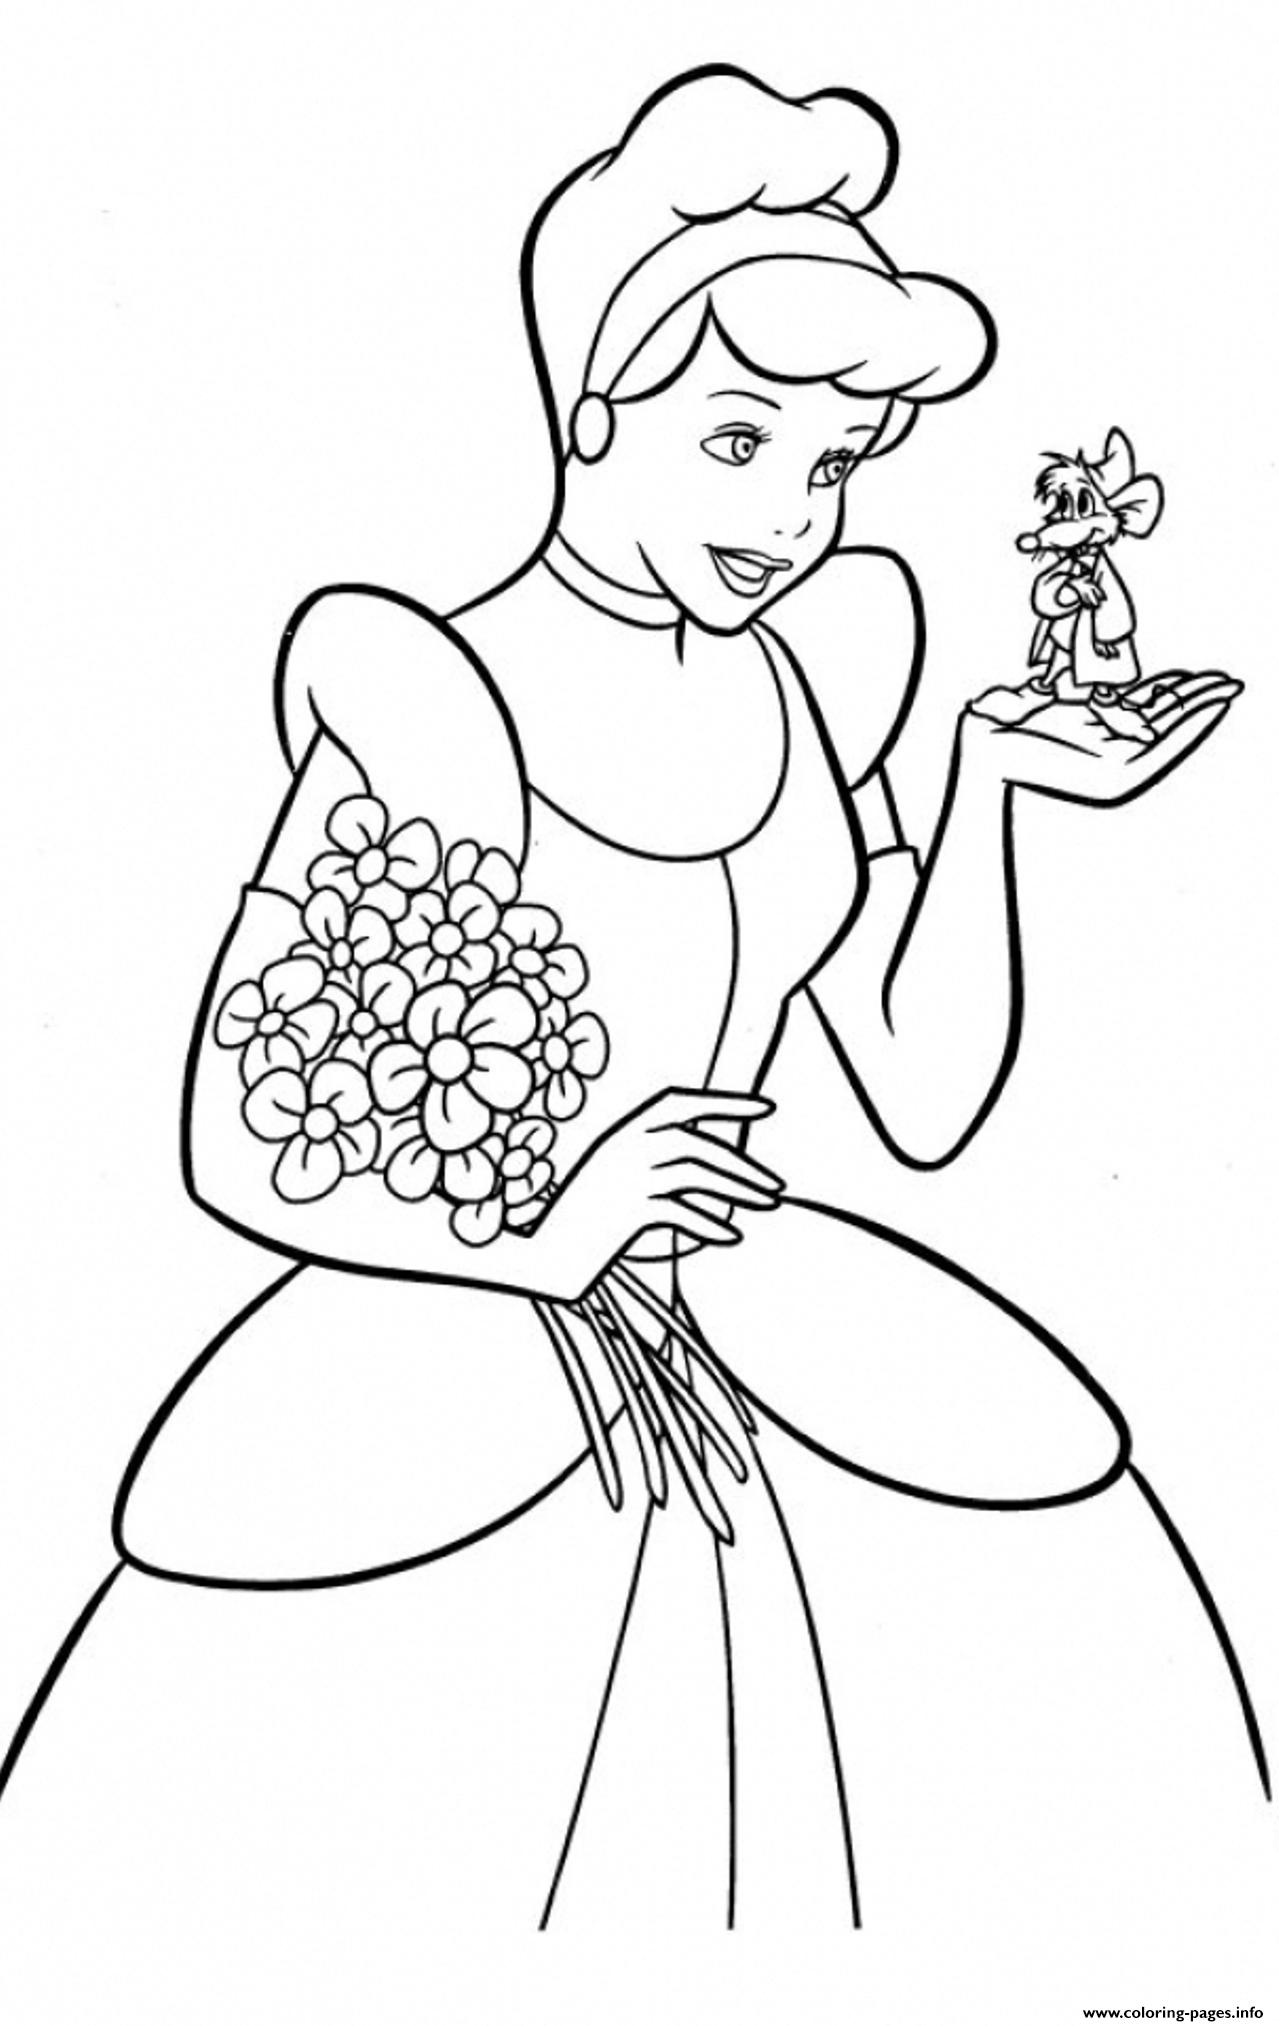 coloring printable pages for kids doll coloring pages best coloring pages for kids for coloring printable pages kids